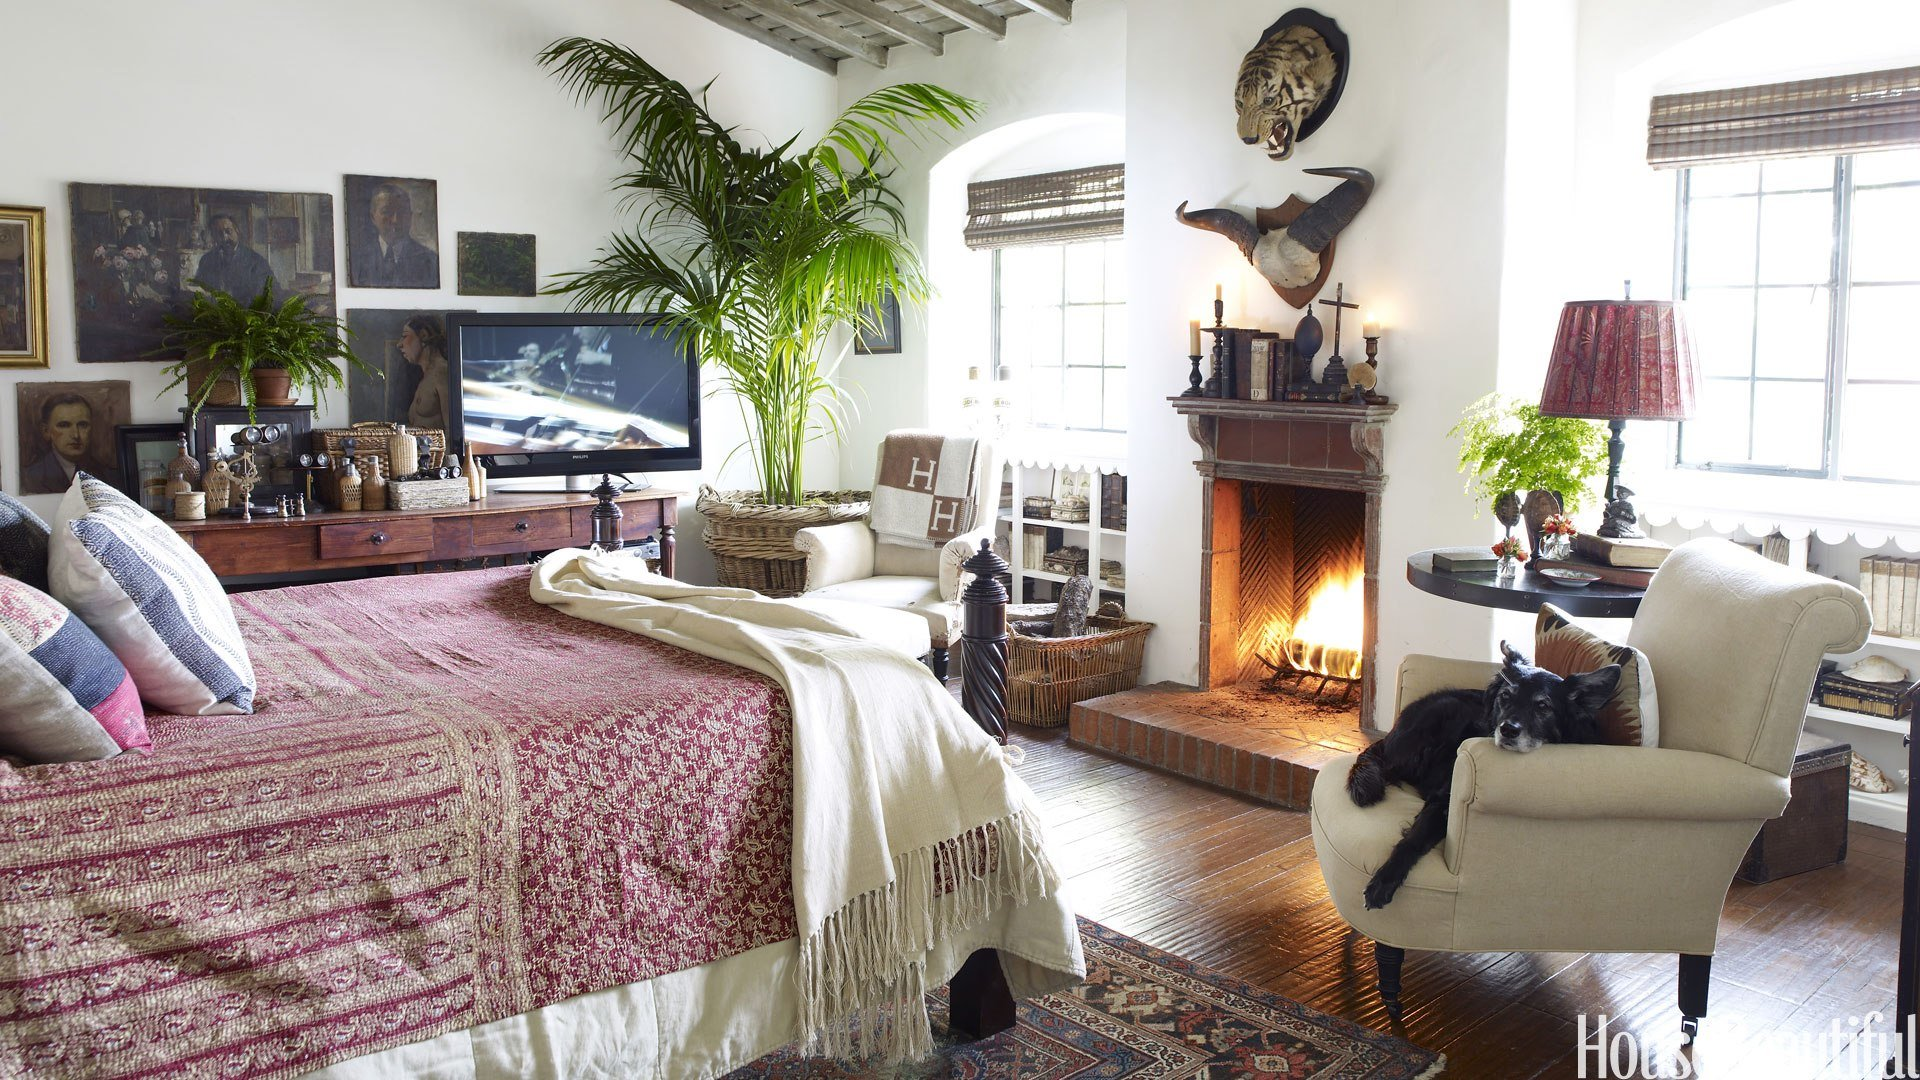 Best 25 Cozy Bedroom Ideas How To Make Your Bedroom Feel Cozy With Pictures